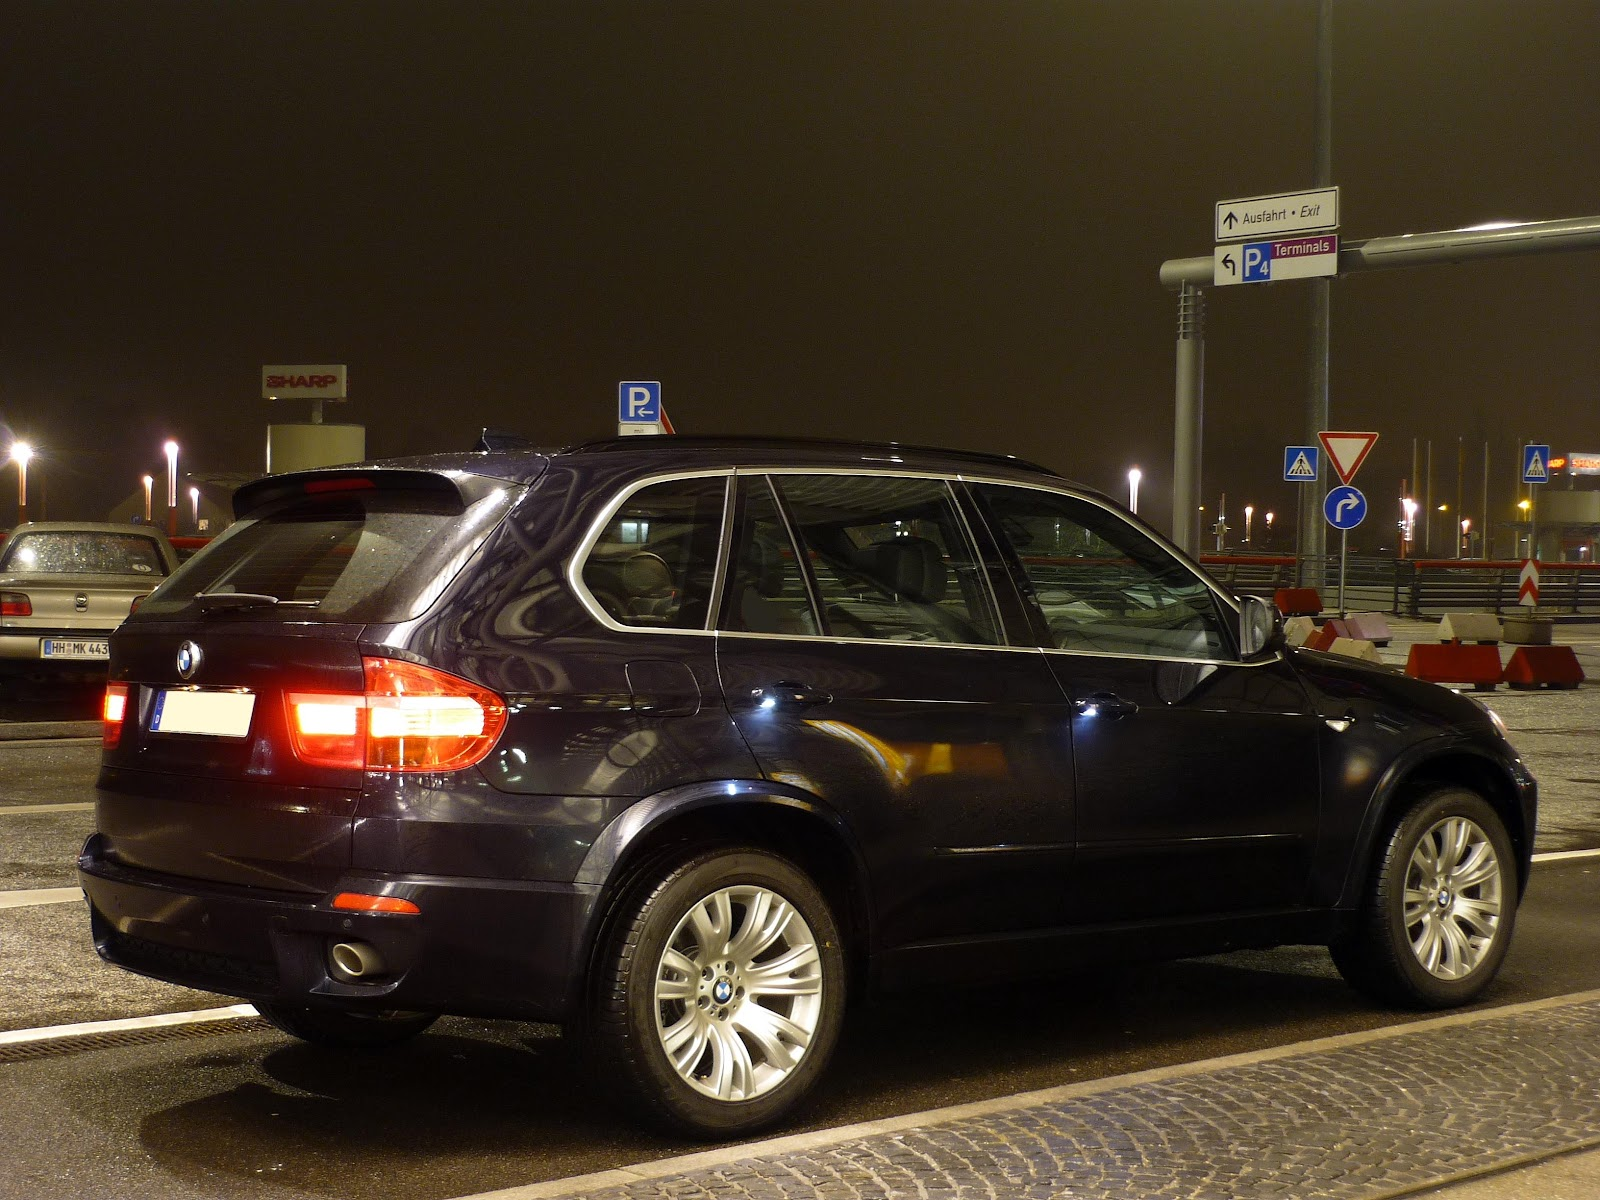 Bmw X5 3rd Row >> Guitigefilmpjes: Spotlight: BMW X5 3.0d (2009 / E70)